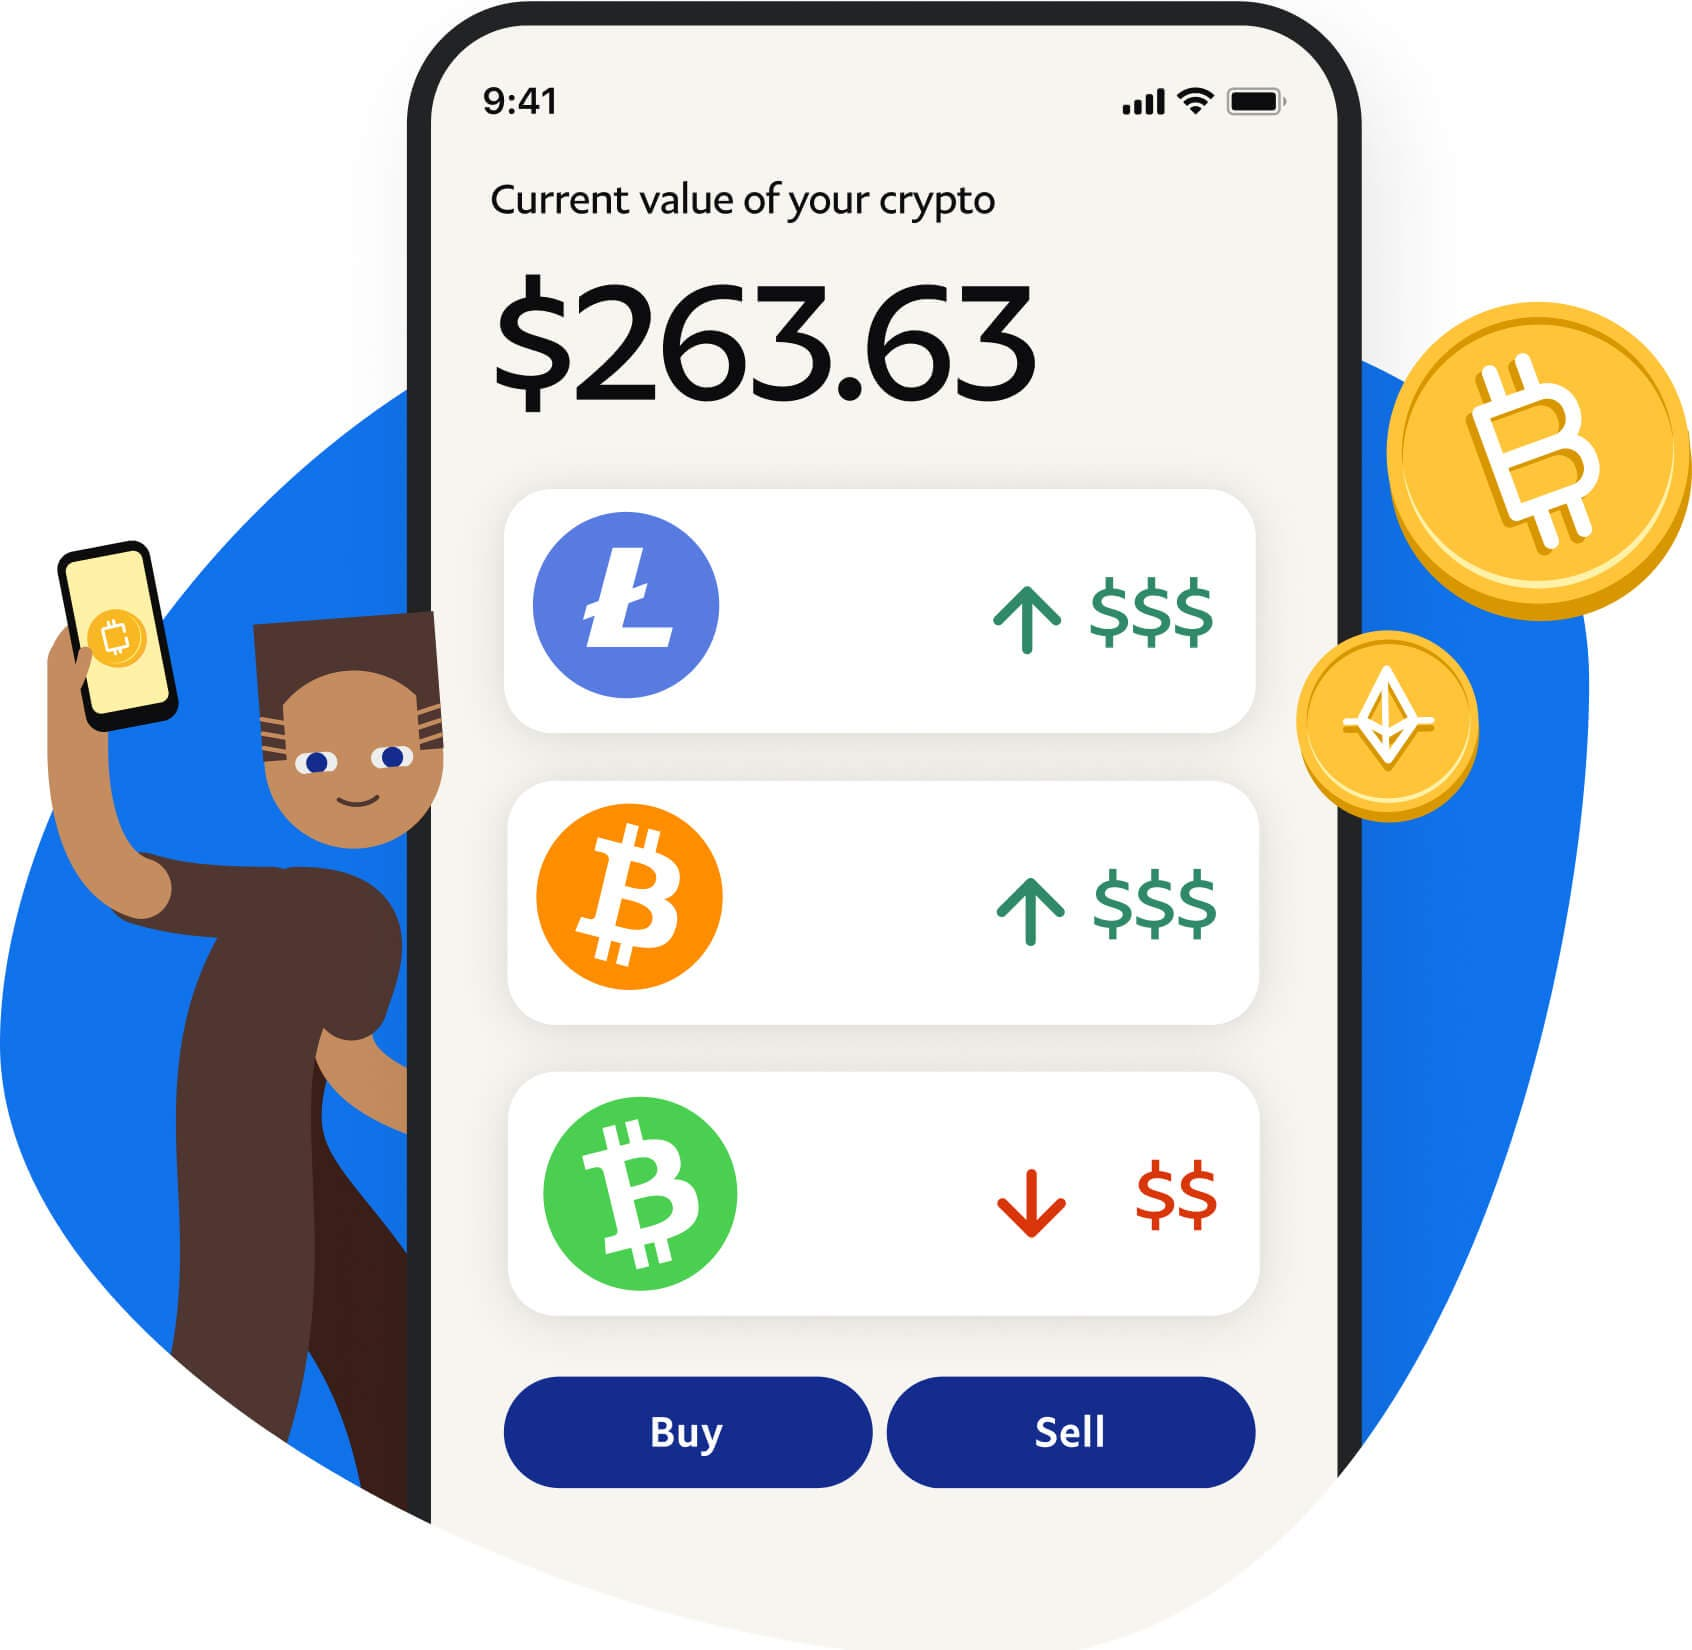 PayPal App image showing crypto buy and sell options